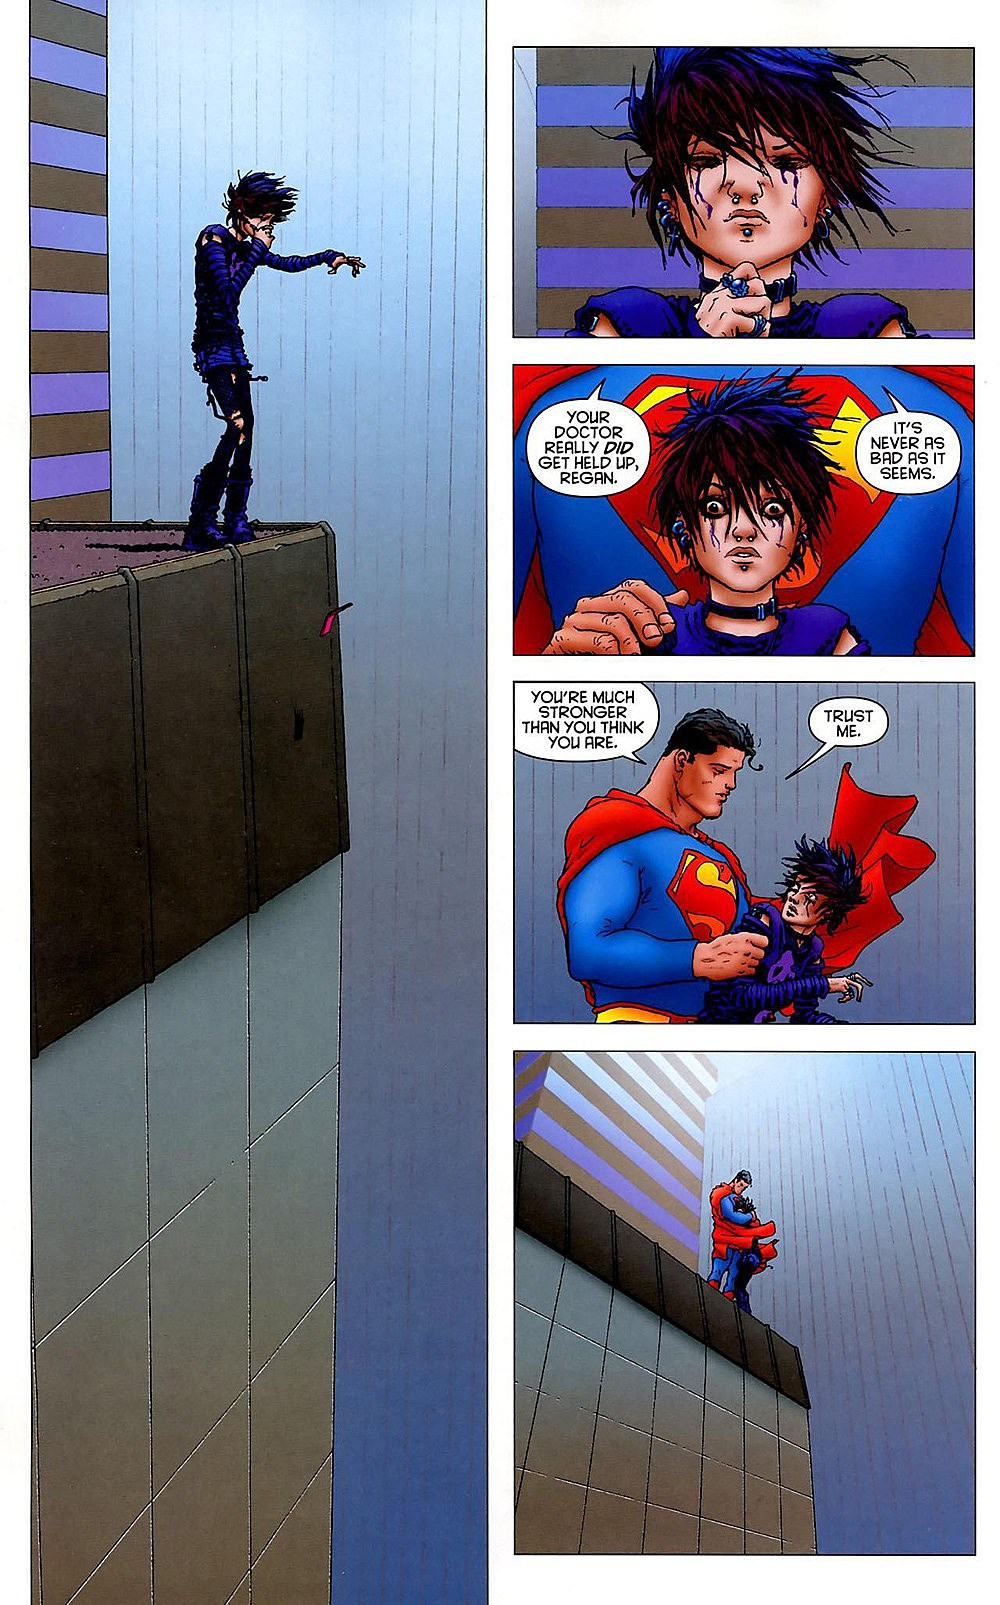 Remembering 'All Star Superman' On World Suicide Prevention Day